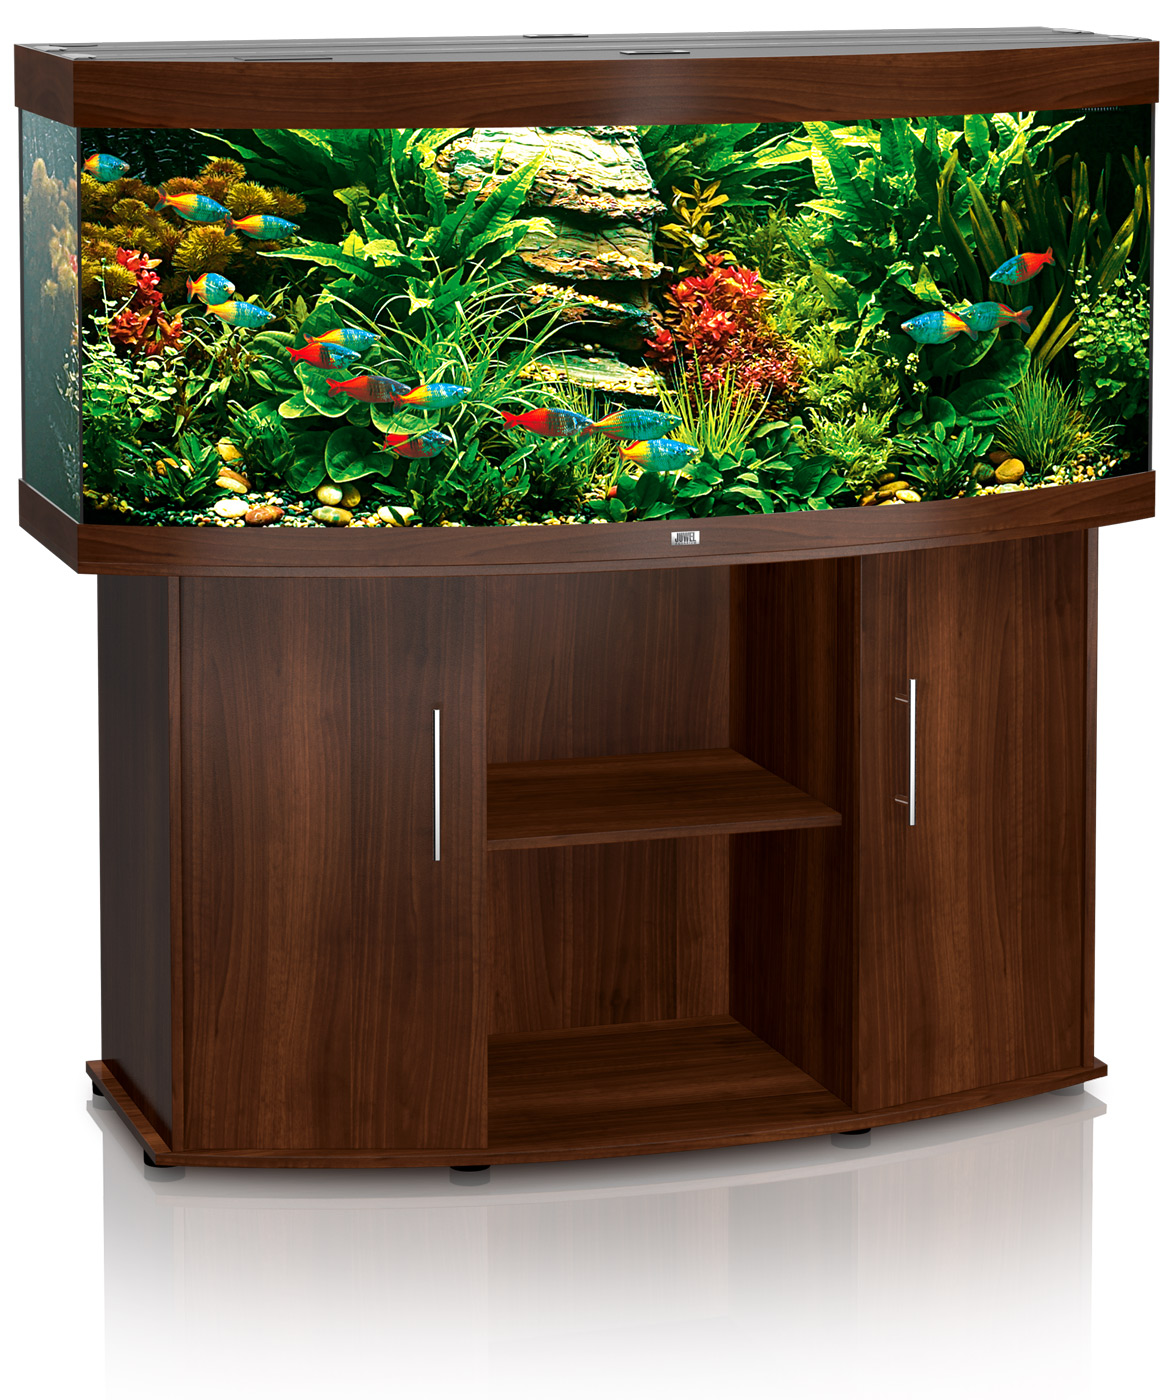 Fish tank wood - Vision 450 Dark Wood Juwel Vision 450 Aquarium